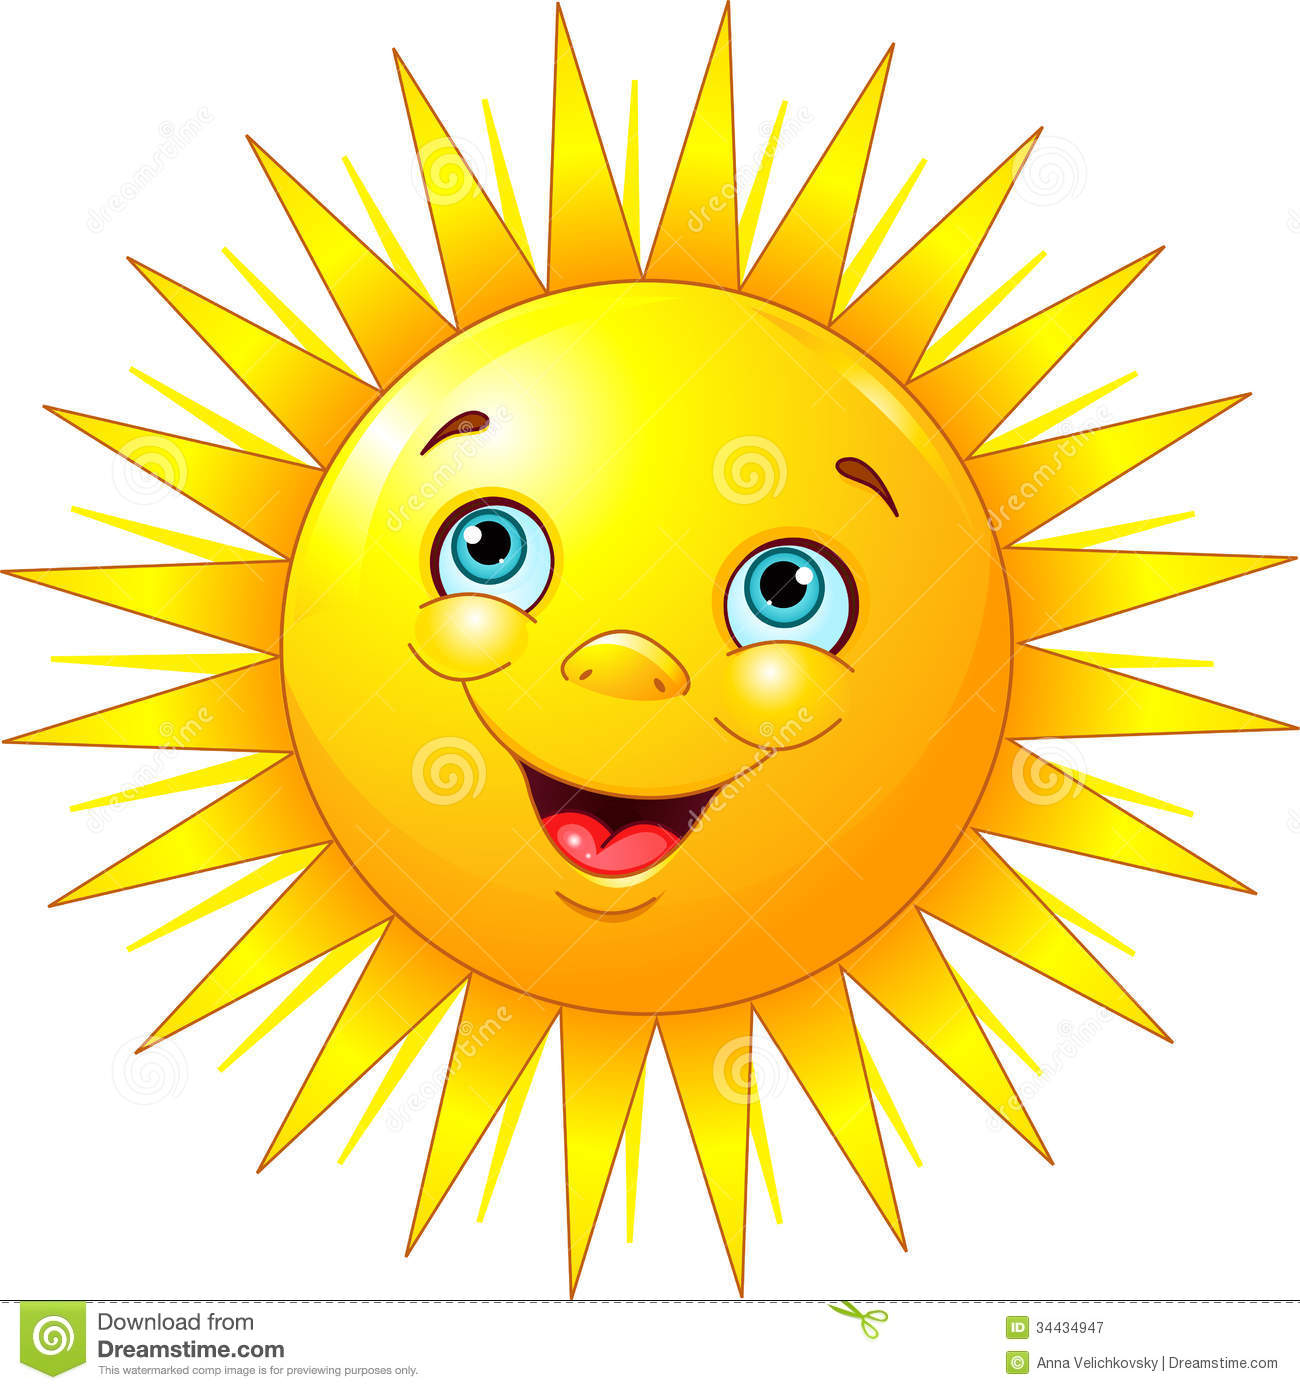 smiling sun stock illustrations 8 478 smiling sun stock rh dreamstime com smiling sun clipart images smiling sun with sunglasses clipart